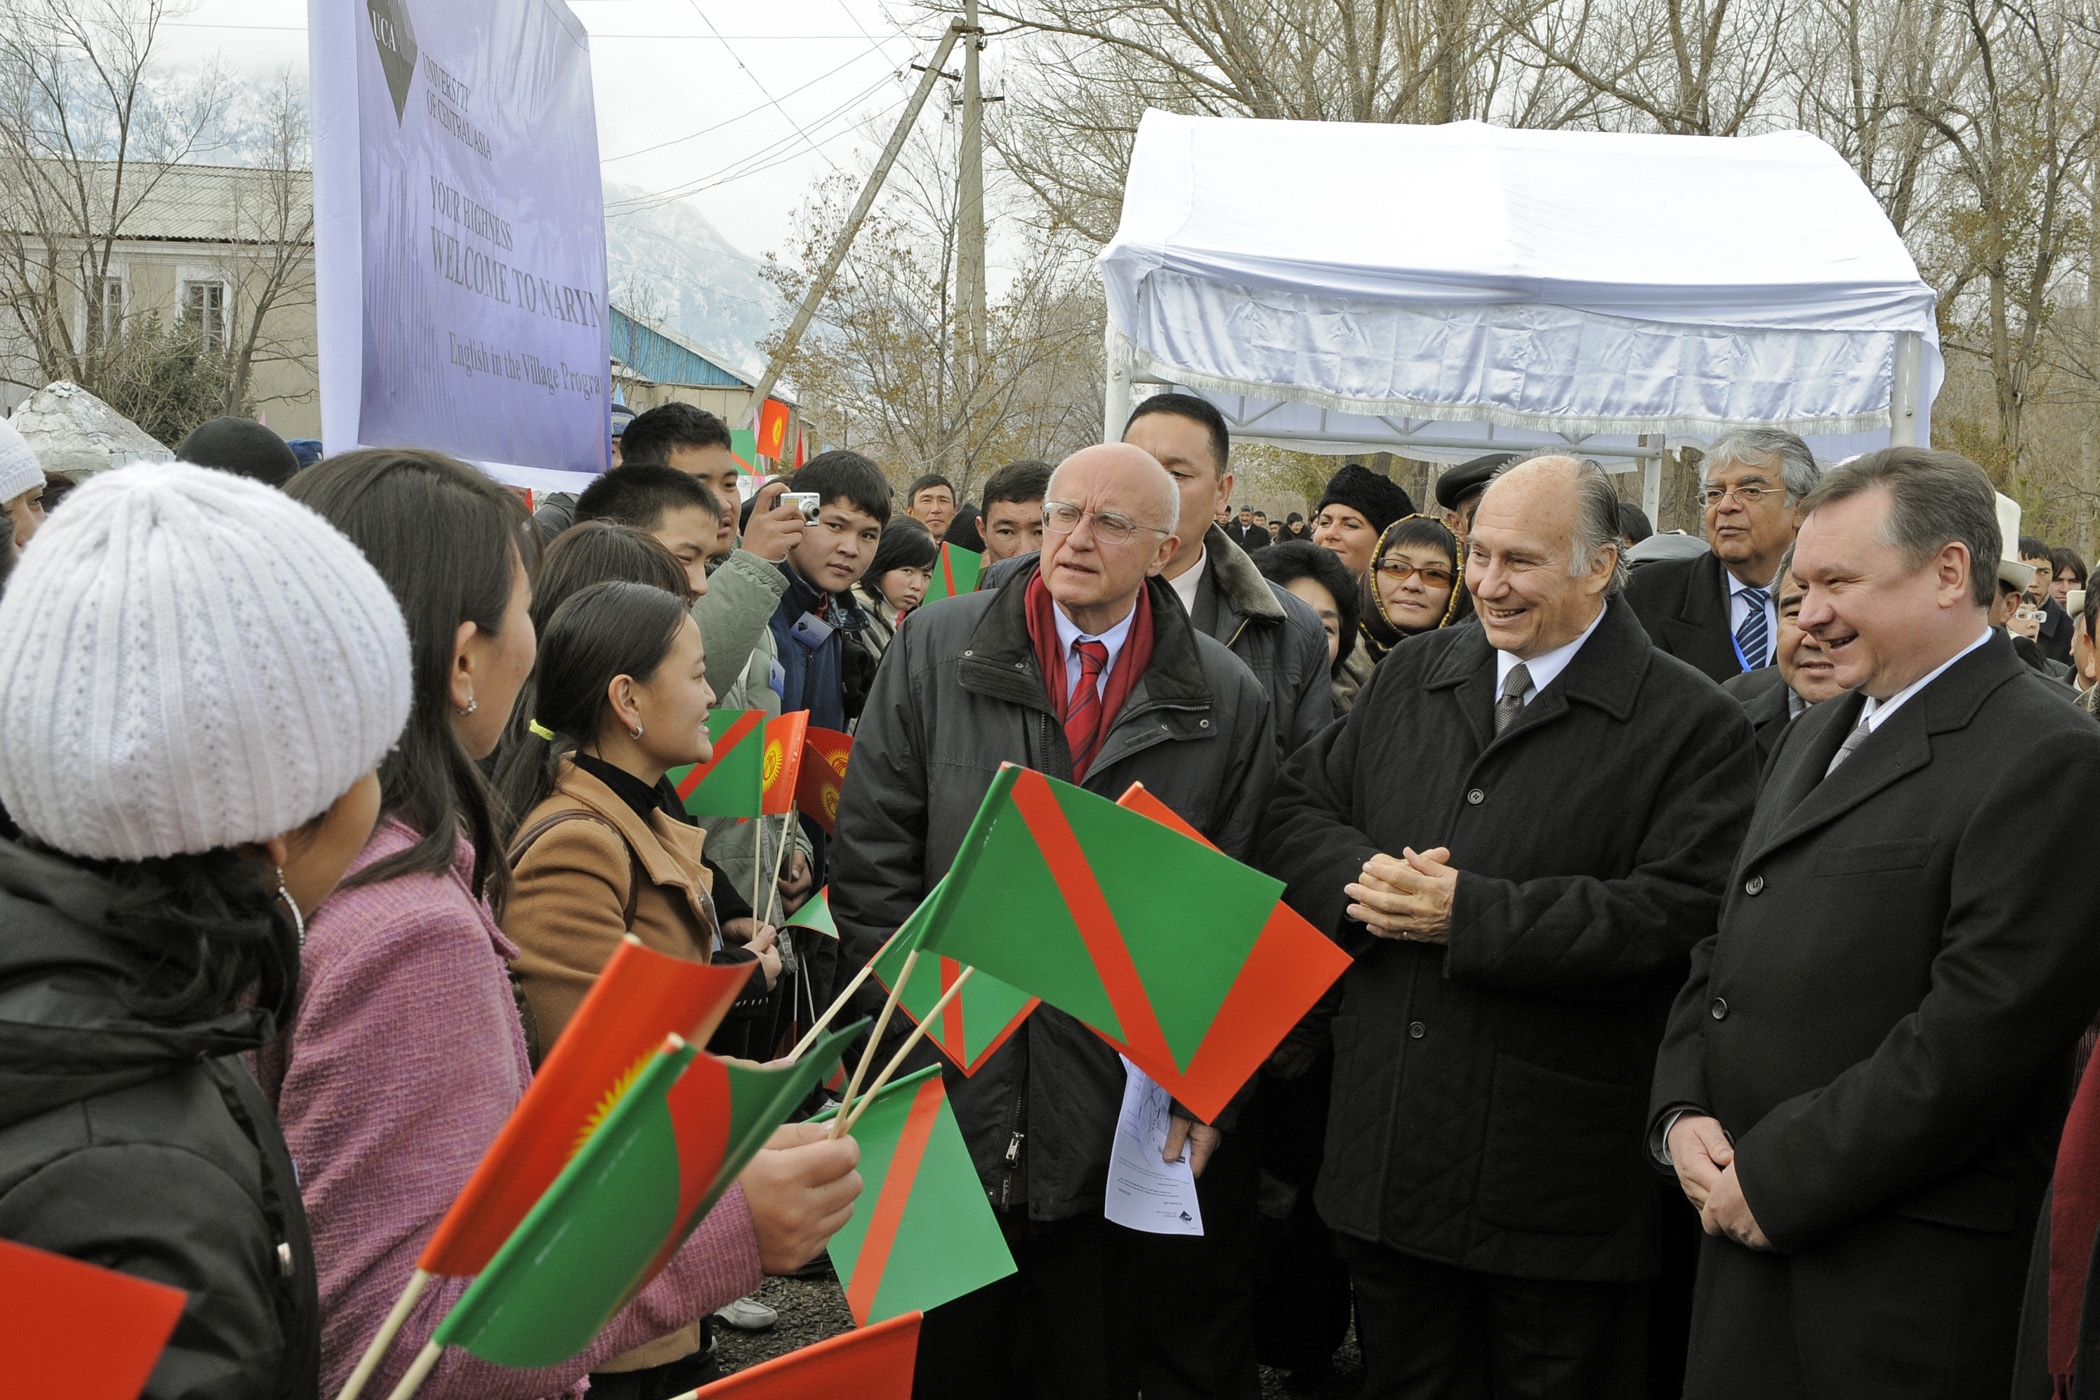 Mawlana Hazar Imam, Prime Minister Chudinov and other UCA and government officials receive a warm welcome from students at the University's town campus in Naryn. Photo: Gary Otte